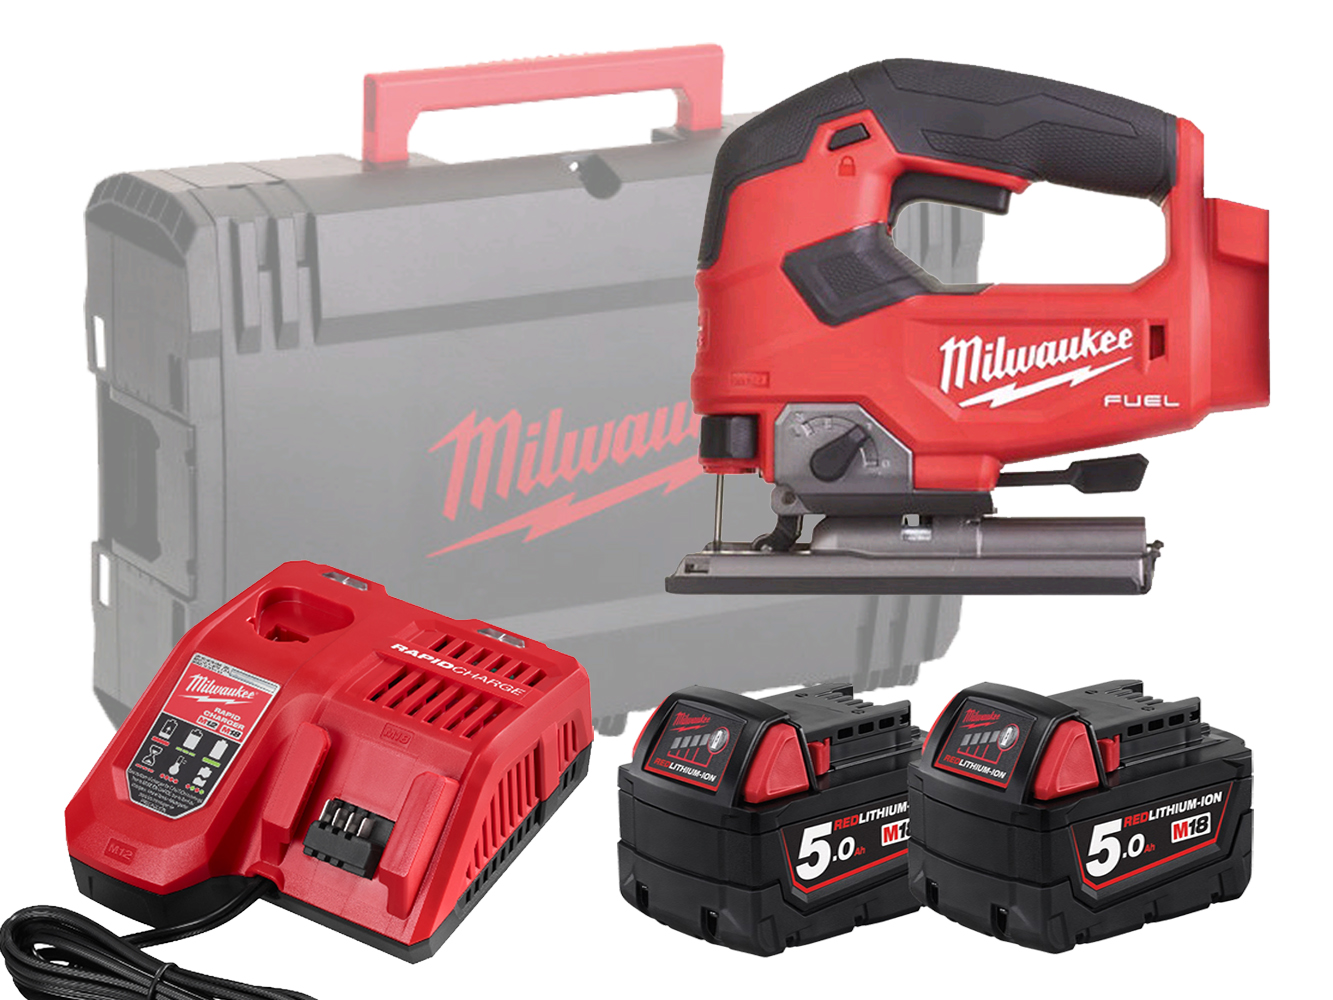 Milwaukee M18FJS 18V FUEL Jigsaw with Top-Handle and 5 Stage Pendulum Action - 5.0ah Pack